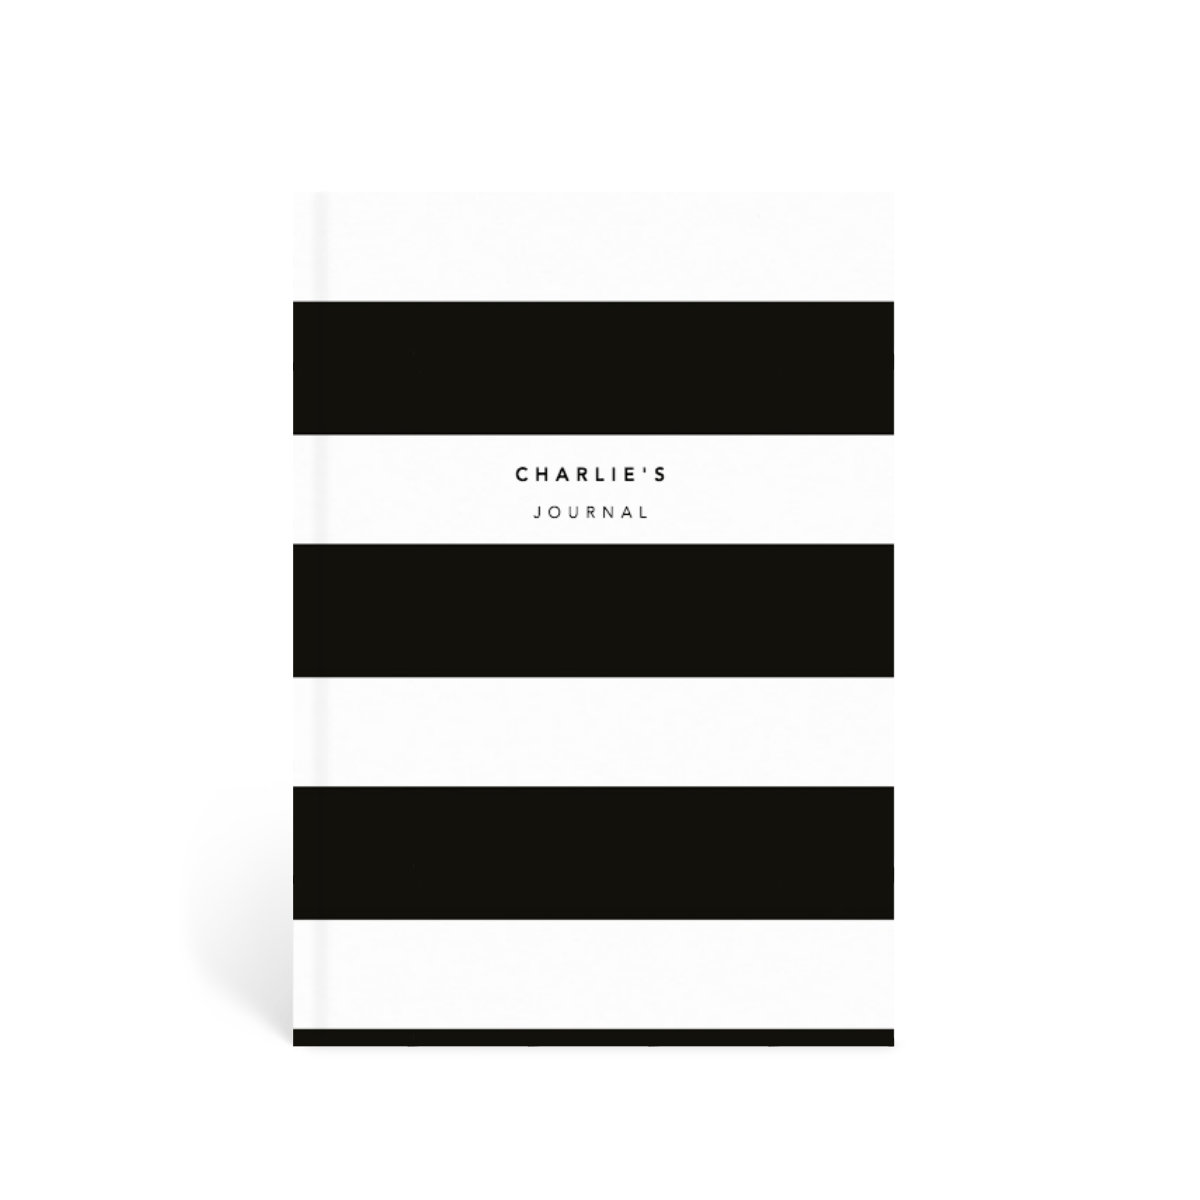 Https%3a%2f%2fwww.papier.com%2fproduct image%2f55988%2f25%2fblack stripe 13452 front 1542369336.png?ixlib=rb 1.1